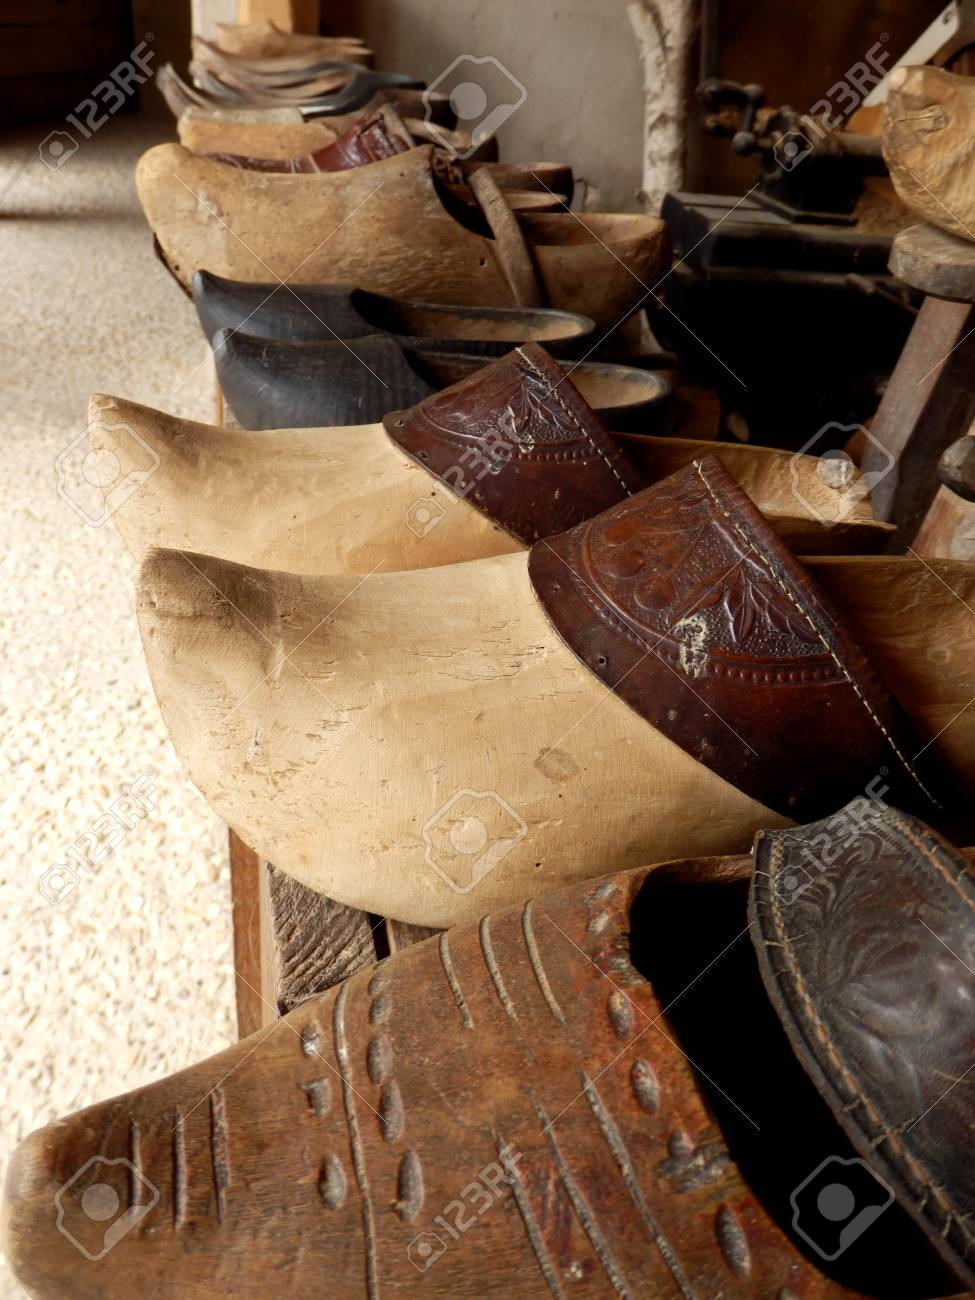 nice shoes official no sale tax Line of vintage clogs in a workshop